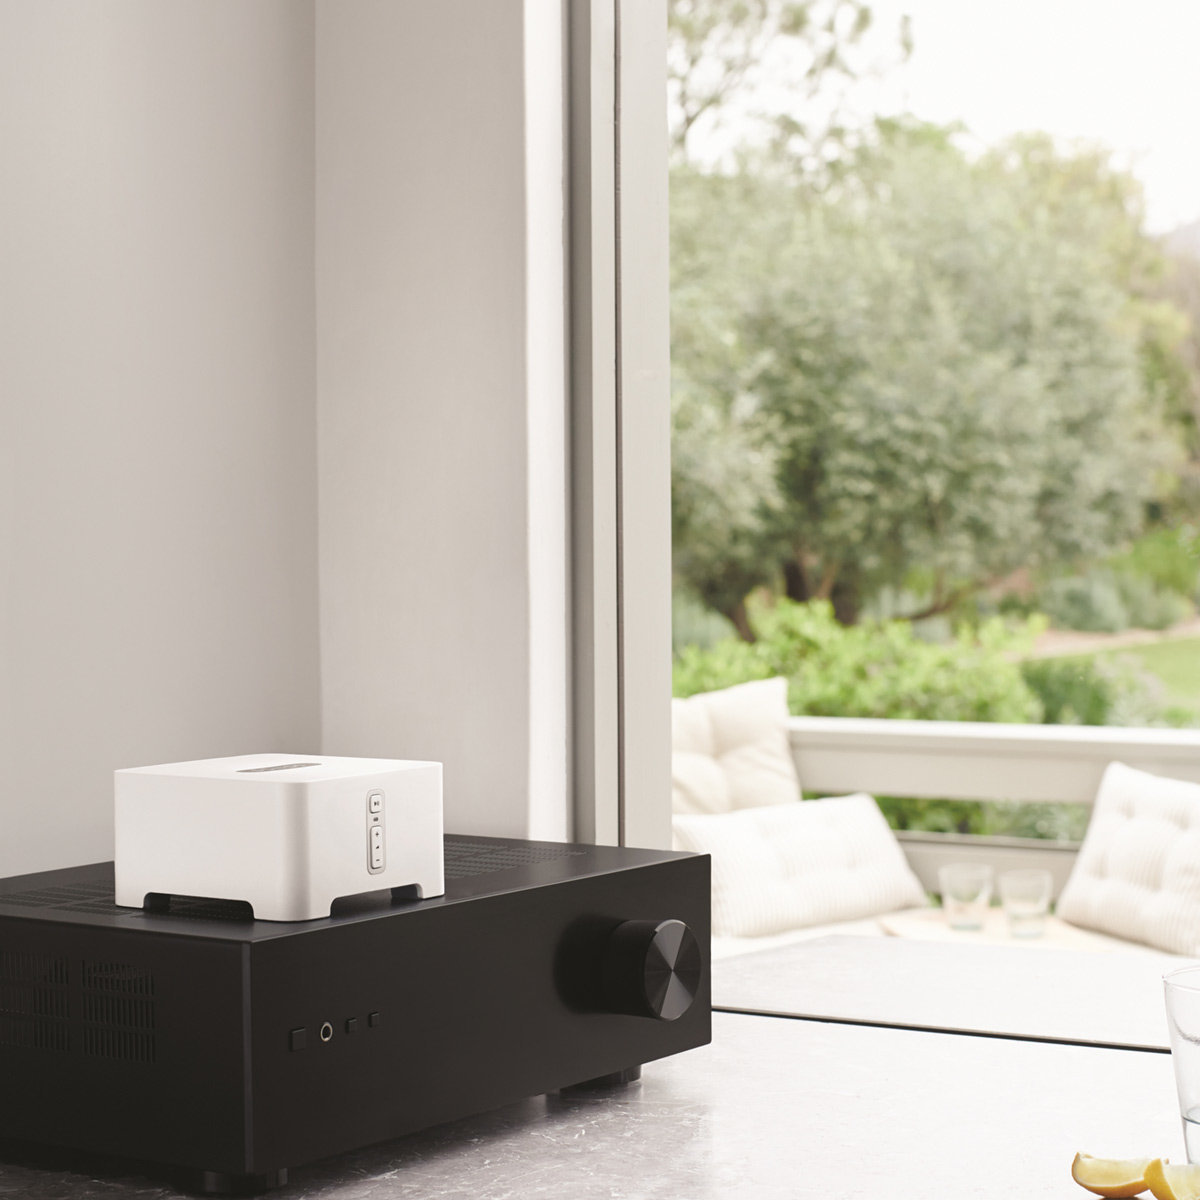 Sonos CONNECT Wireless HiFi Player Formerly ZP90